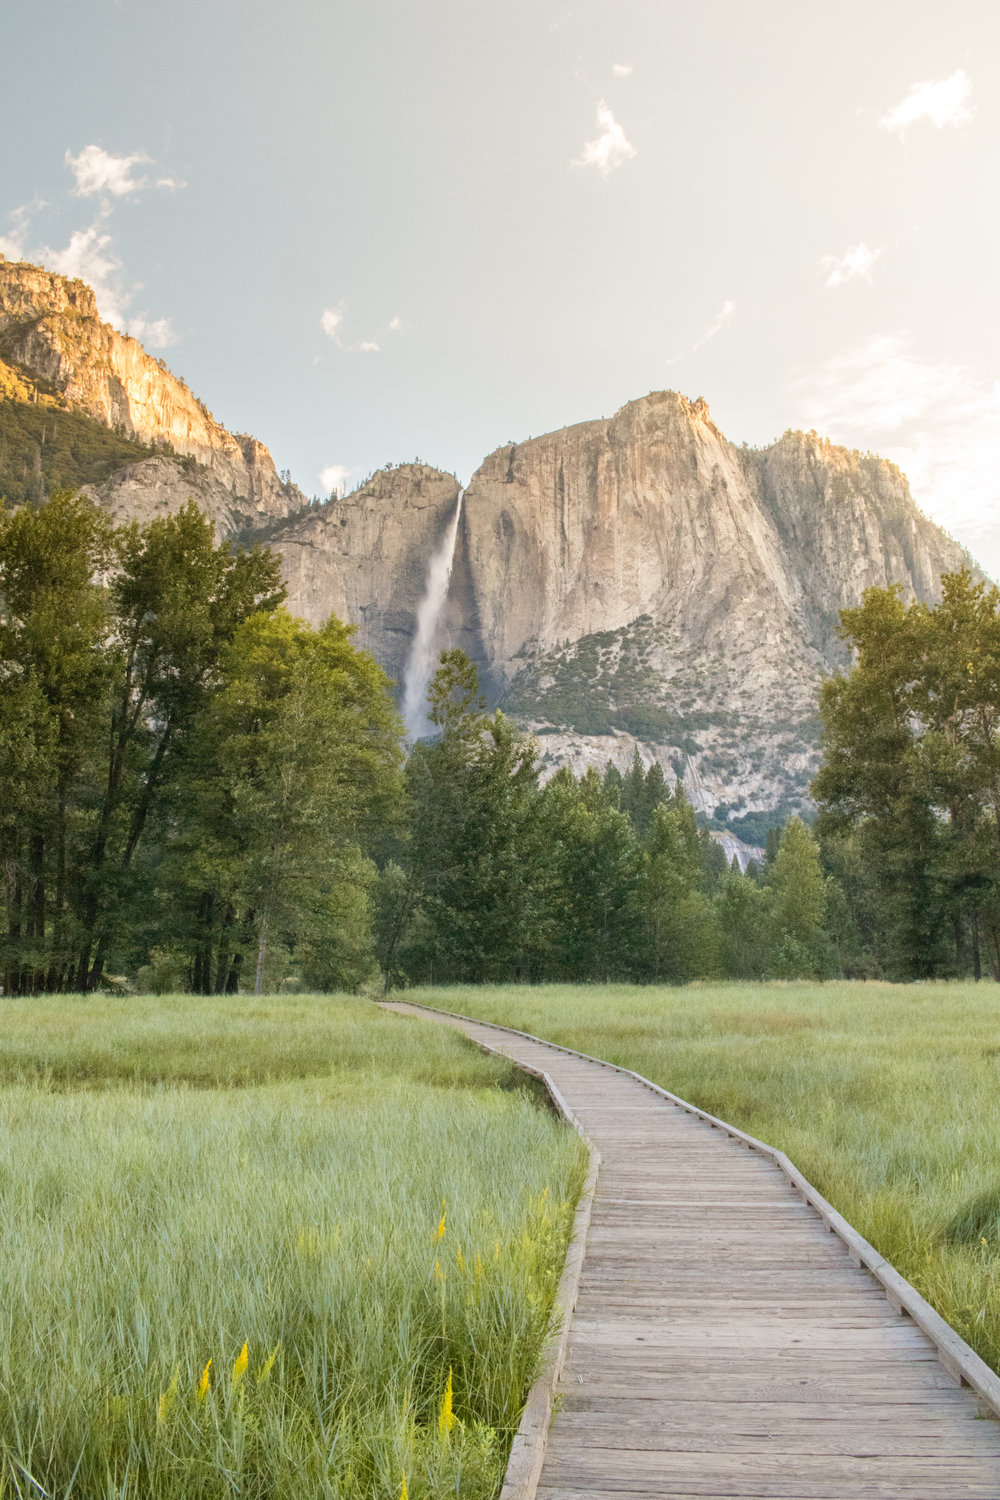 Infamous Yosemite Instagram Picture - Seriously, how am I not Instagram famous for this? ;)